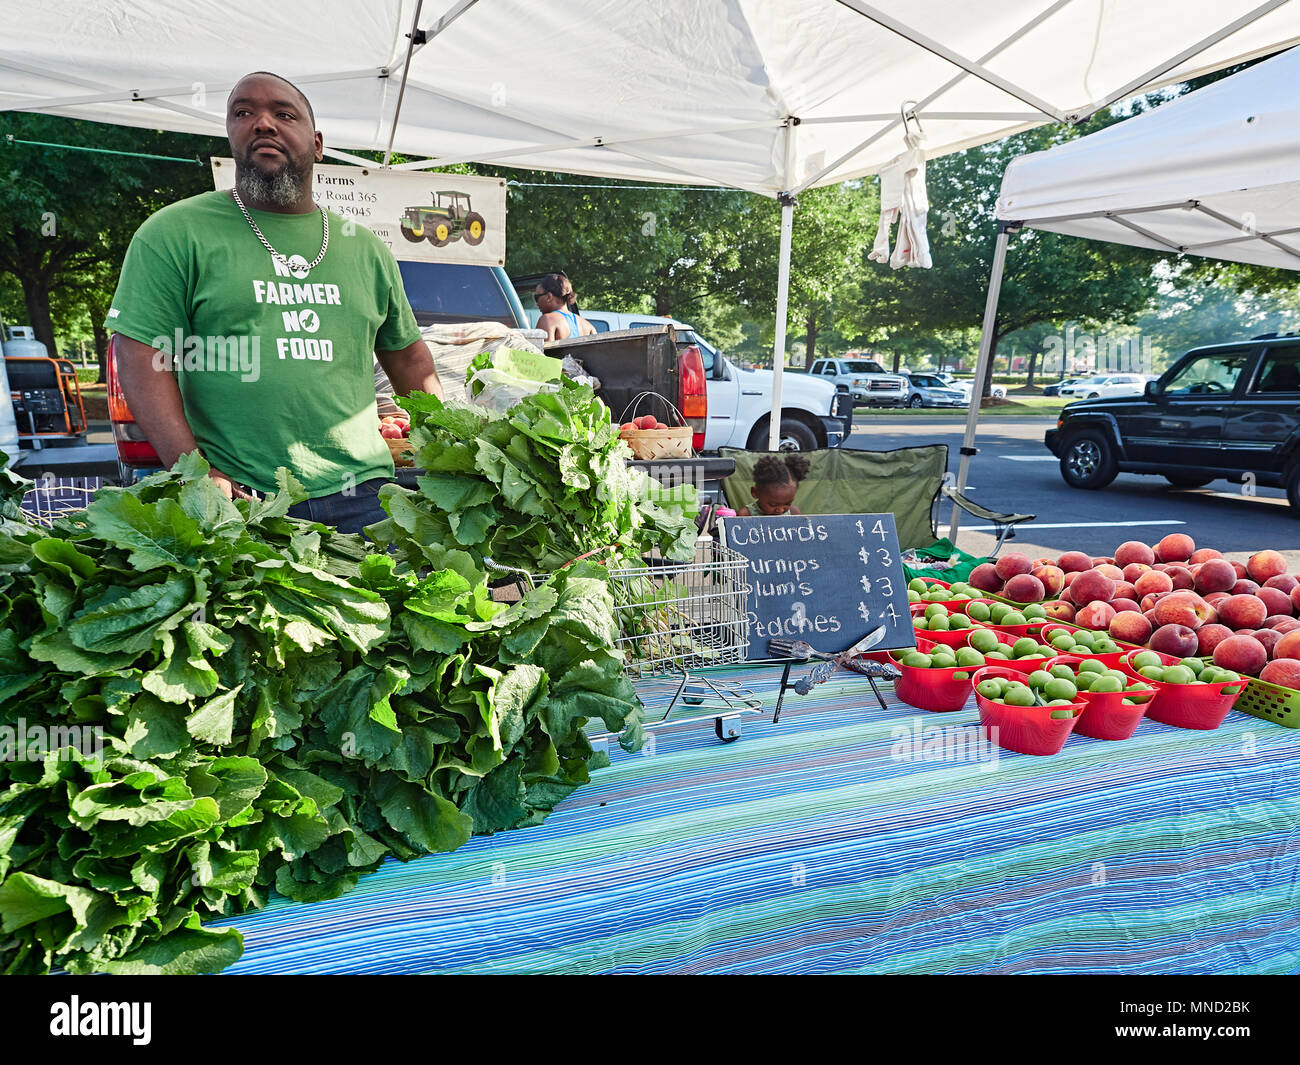 African-American male farmer selling fresh southern produce at a farmer's market in Montgomery Alabama, USA. - Stock Image